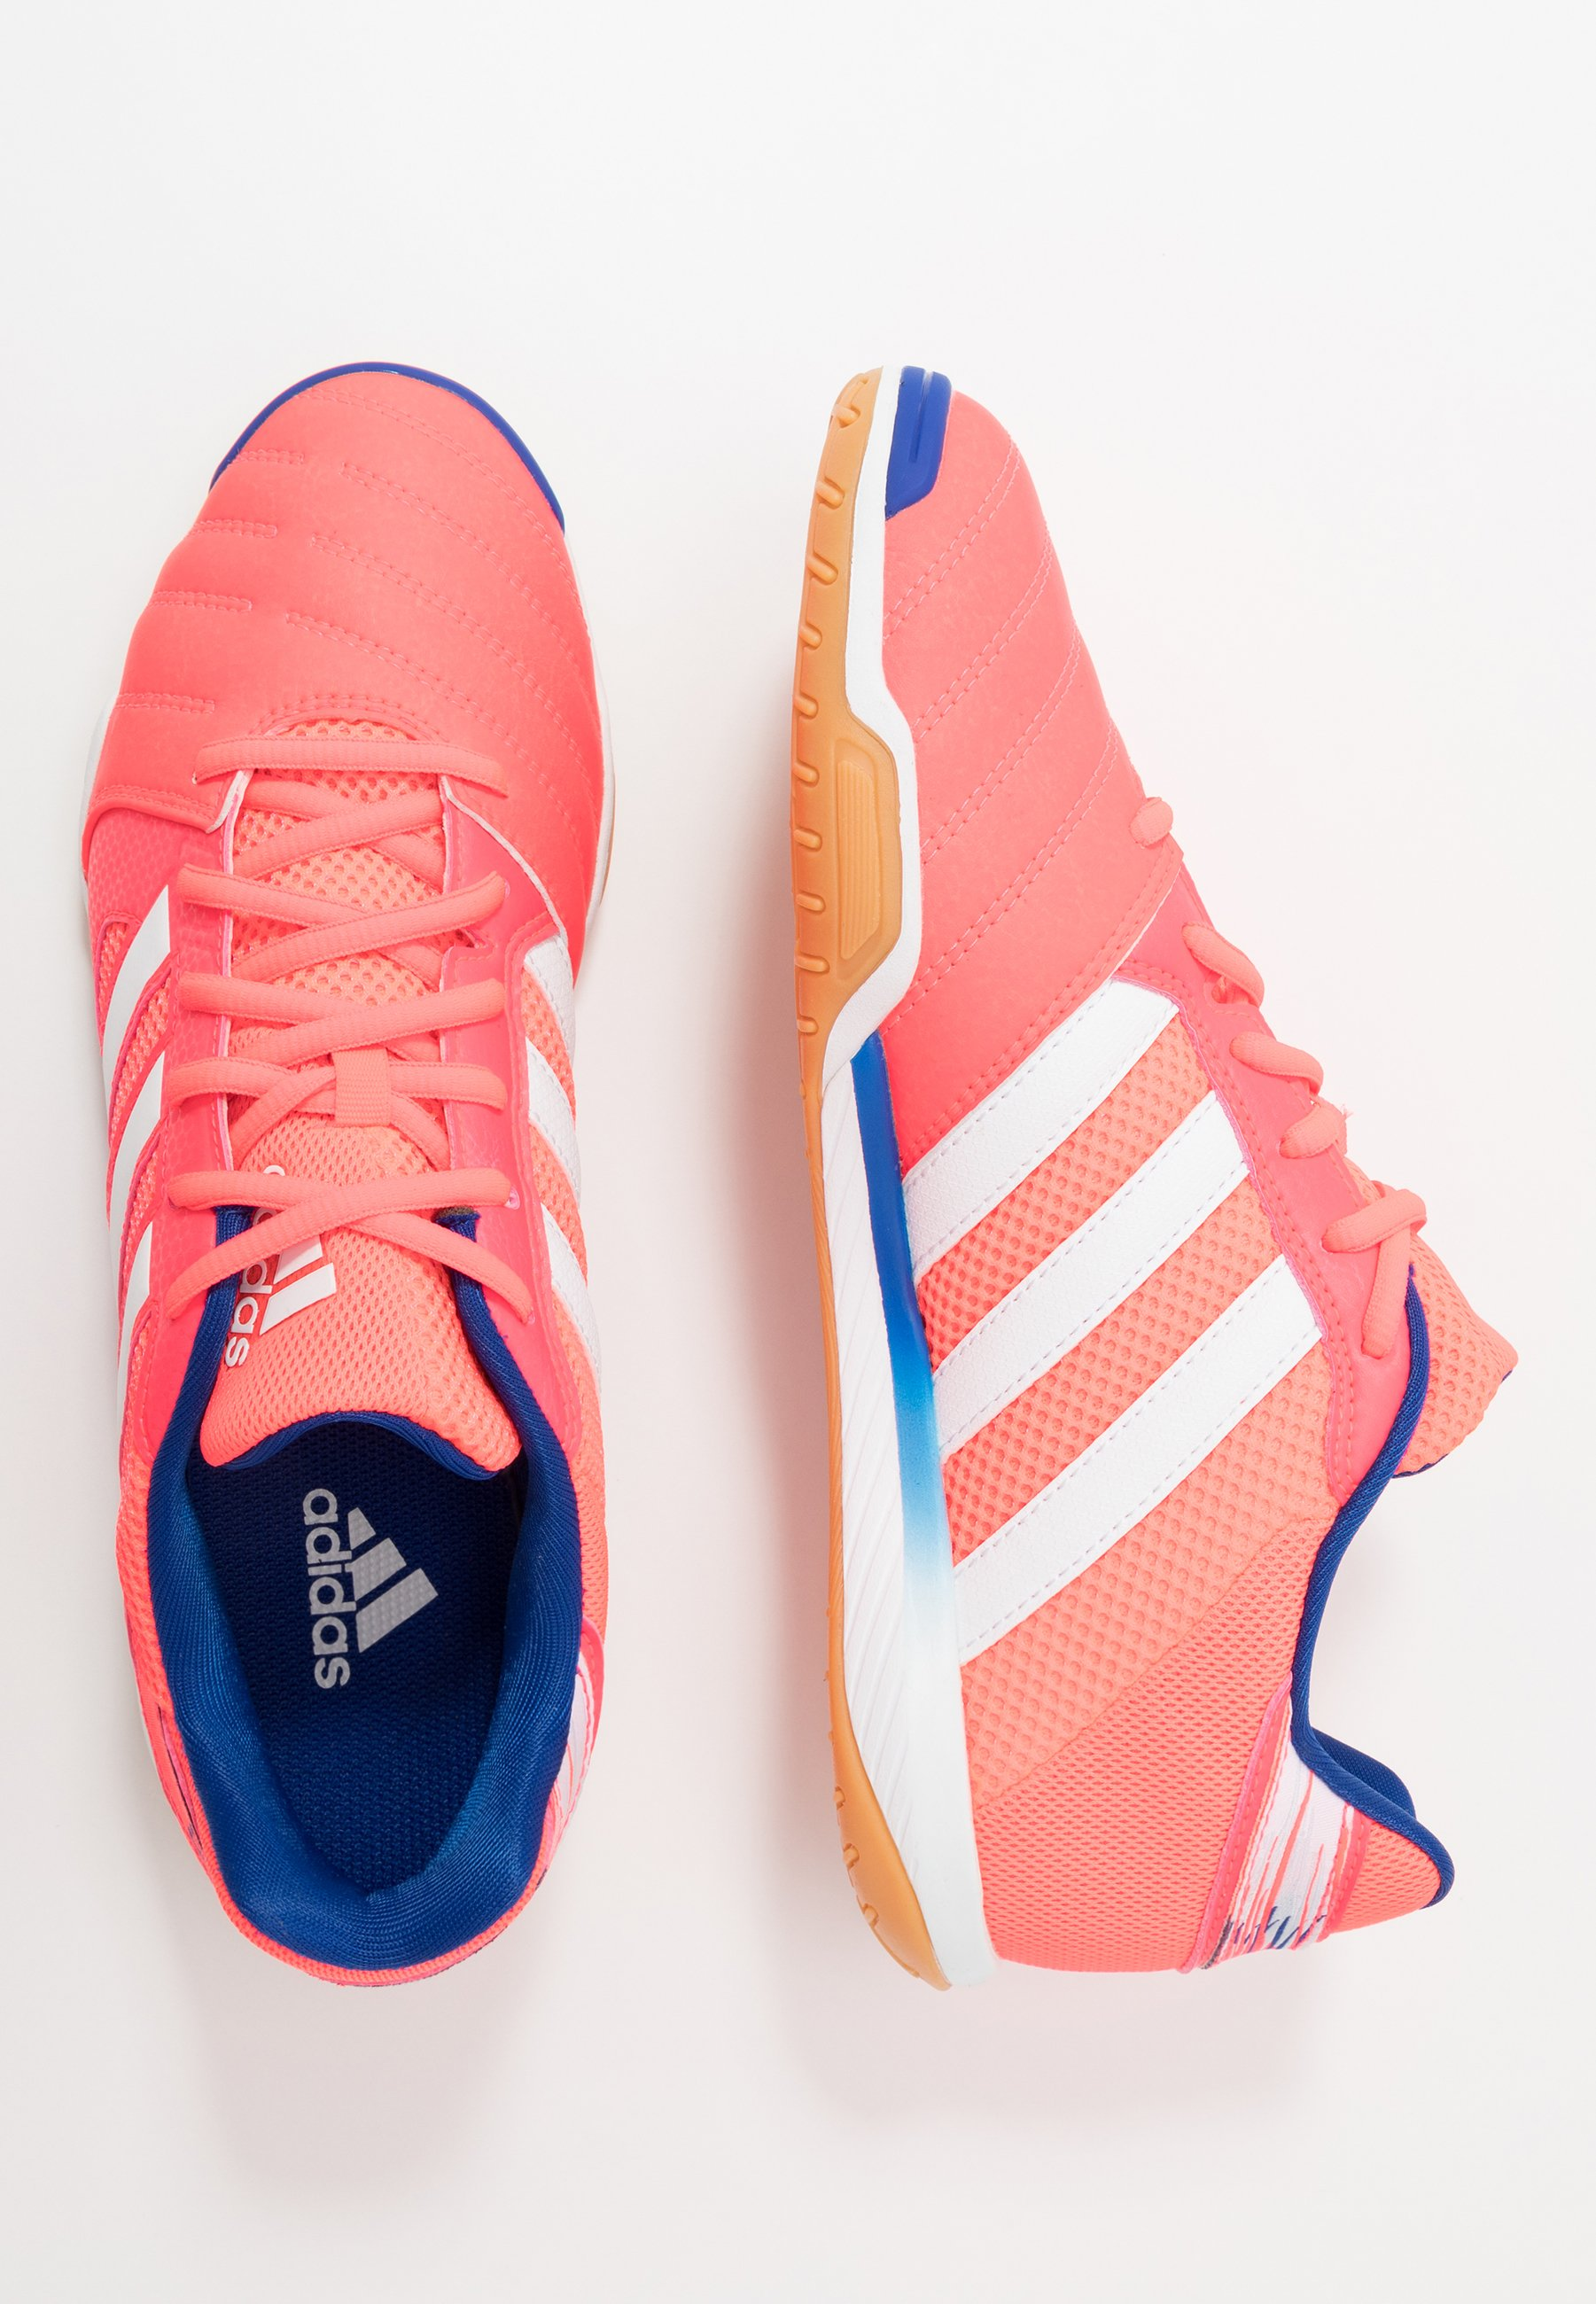 TOP SALA FOOTBALL SHOES INDOOR Fotbollsskor inomhusskor signal pinkfootwear whiteteam royal blue